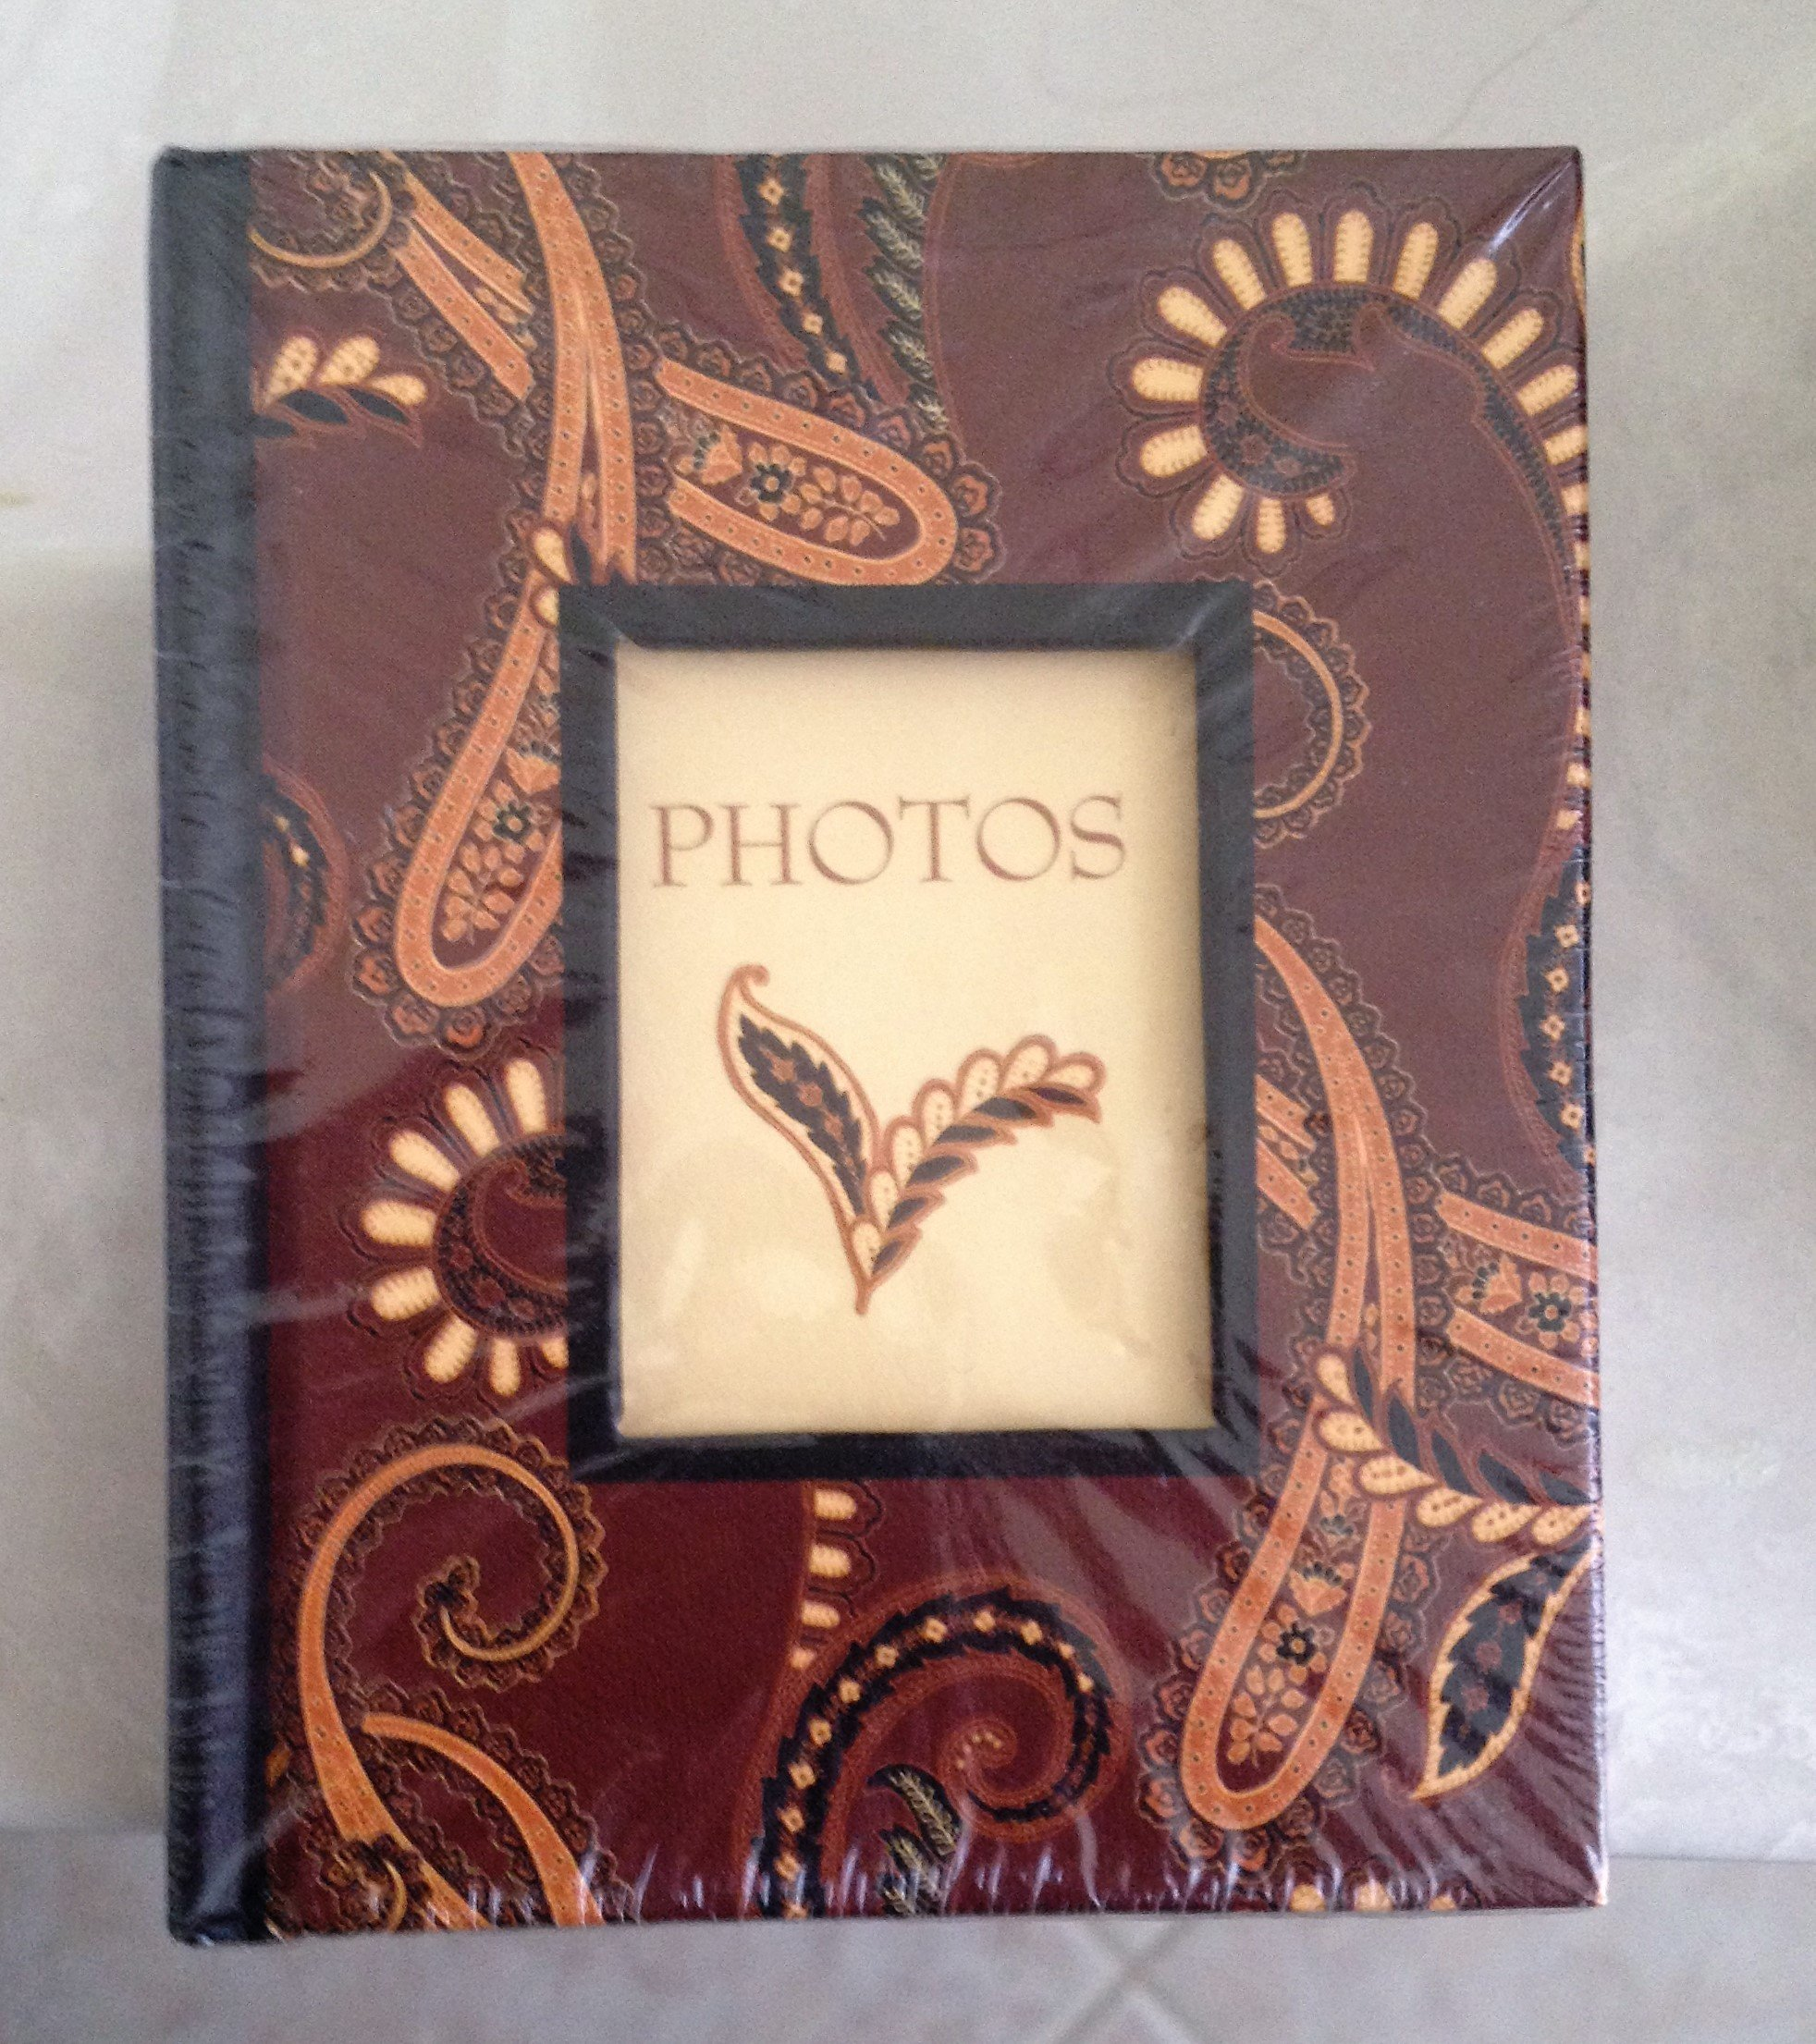 Pocket Pictures Photo Album Holds 12 Wallet Size Photos Plus Cover